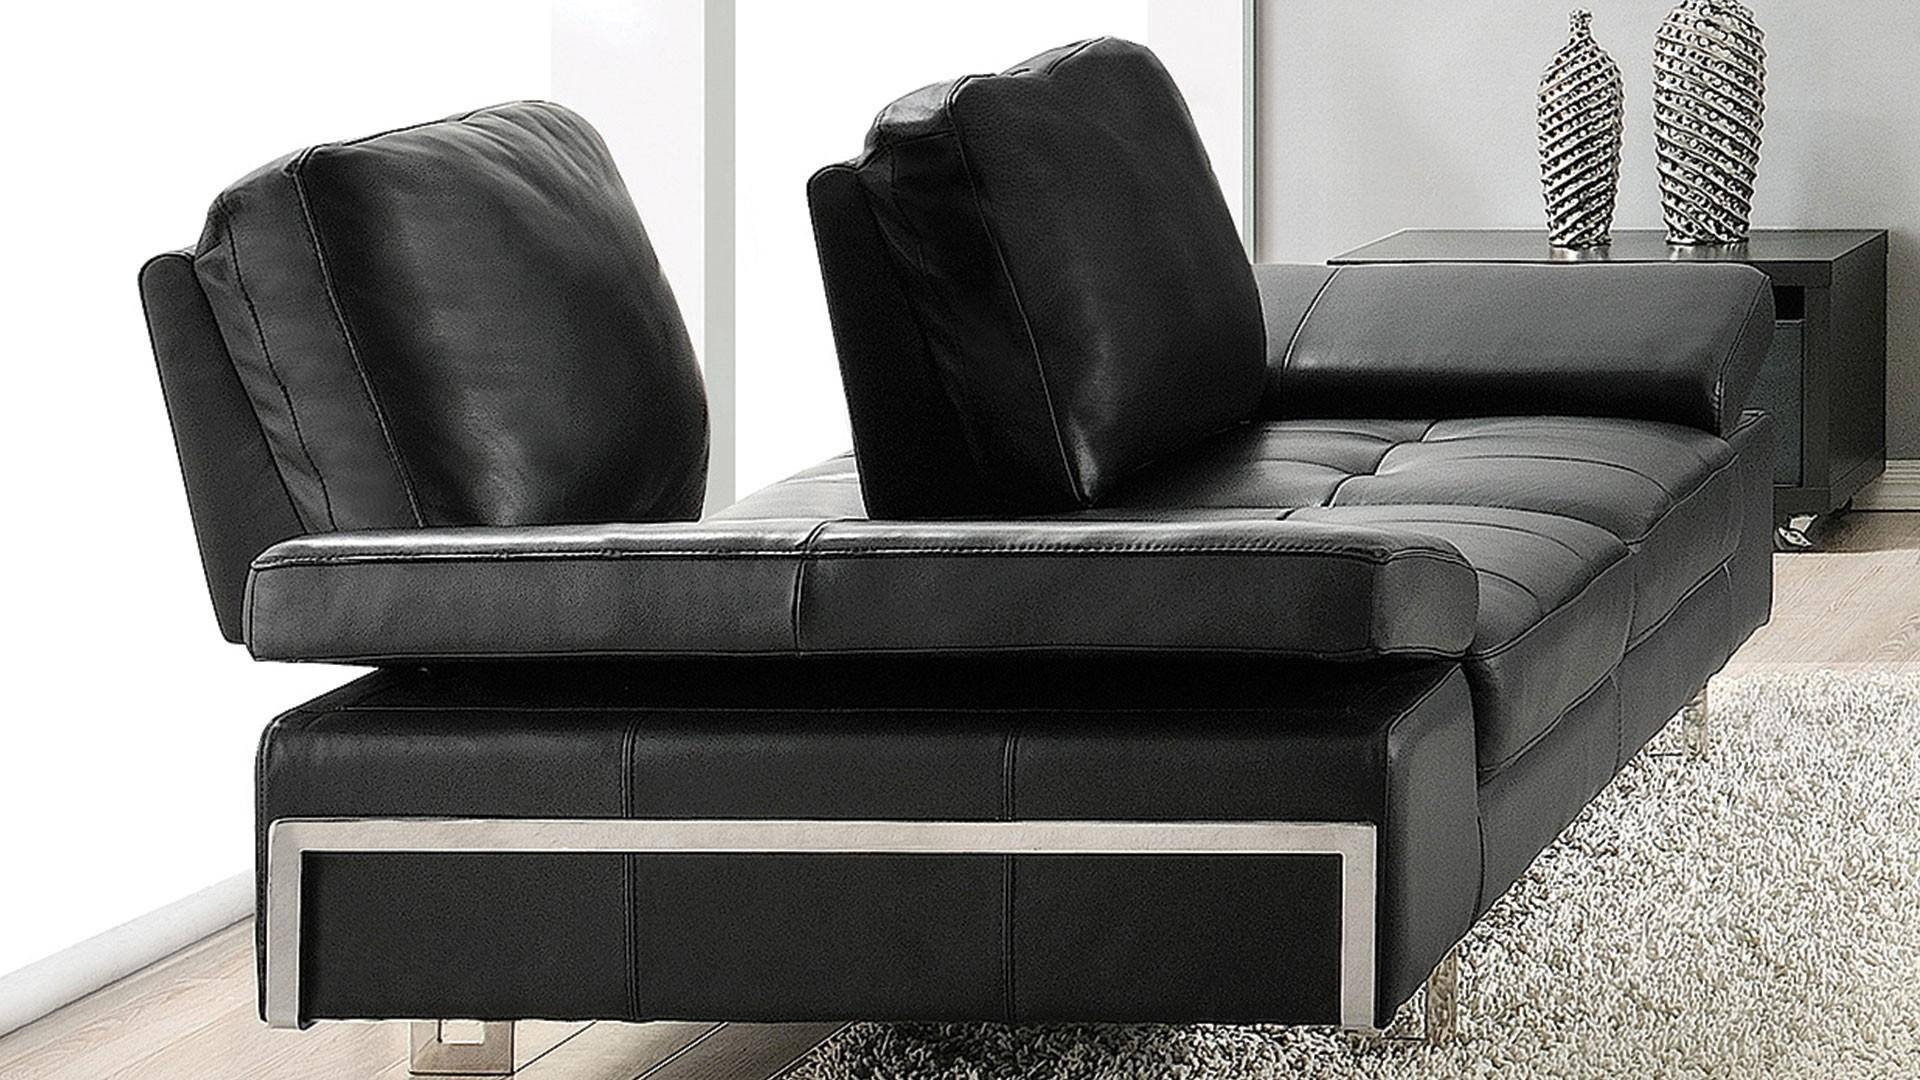 Made In Italy Leather Luxury Contemporary Furniture Set: At Home USA Gia Ebony Luxury Italian Leather Ultra Modern